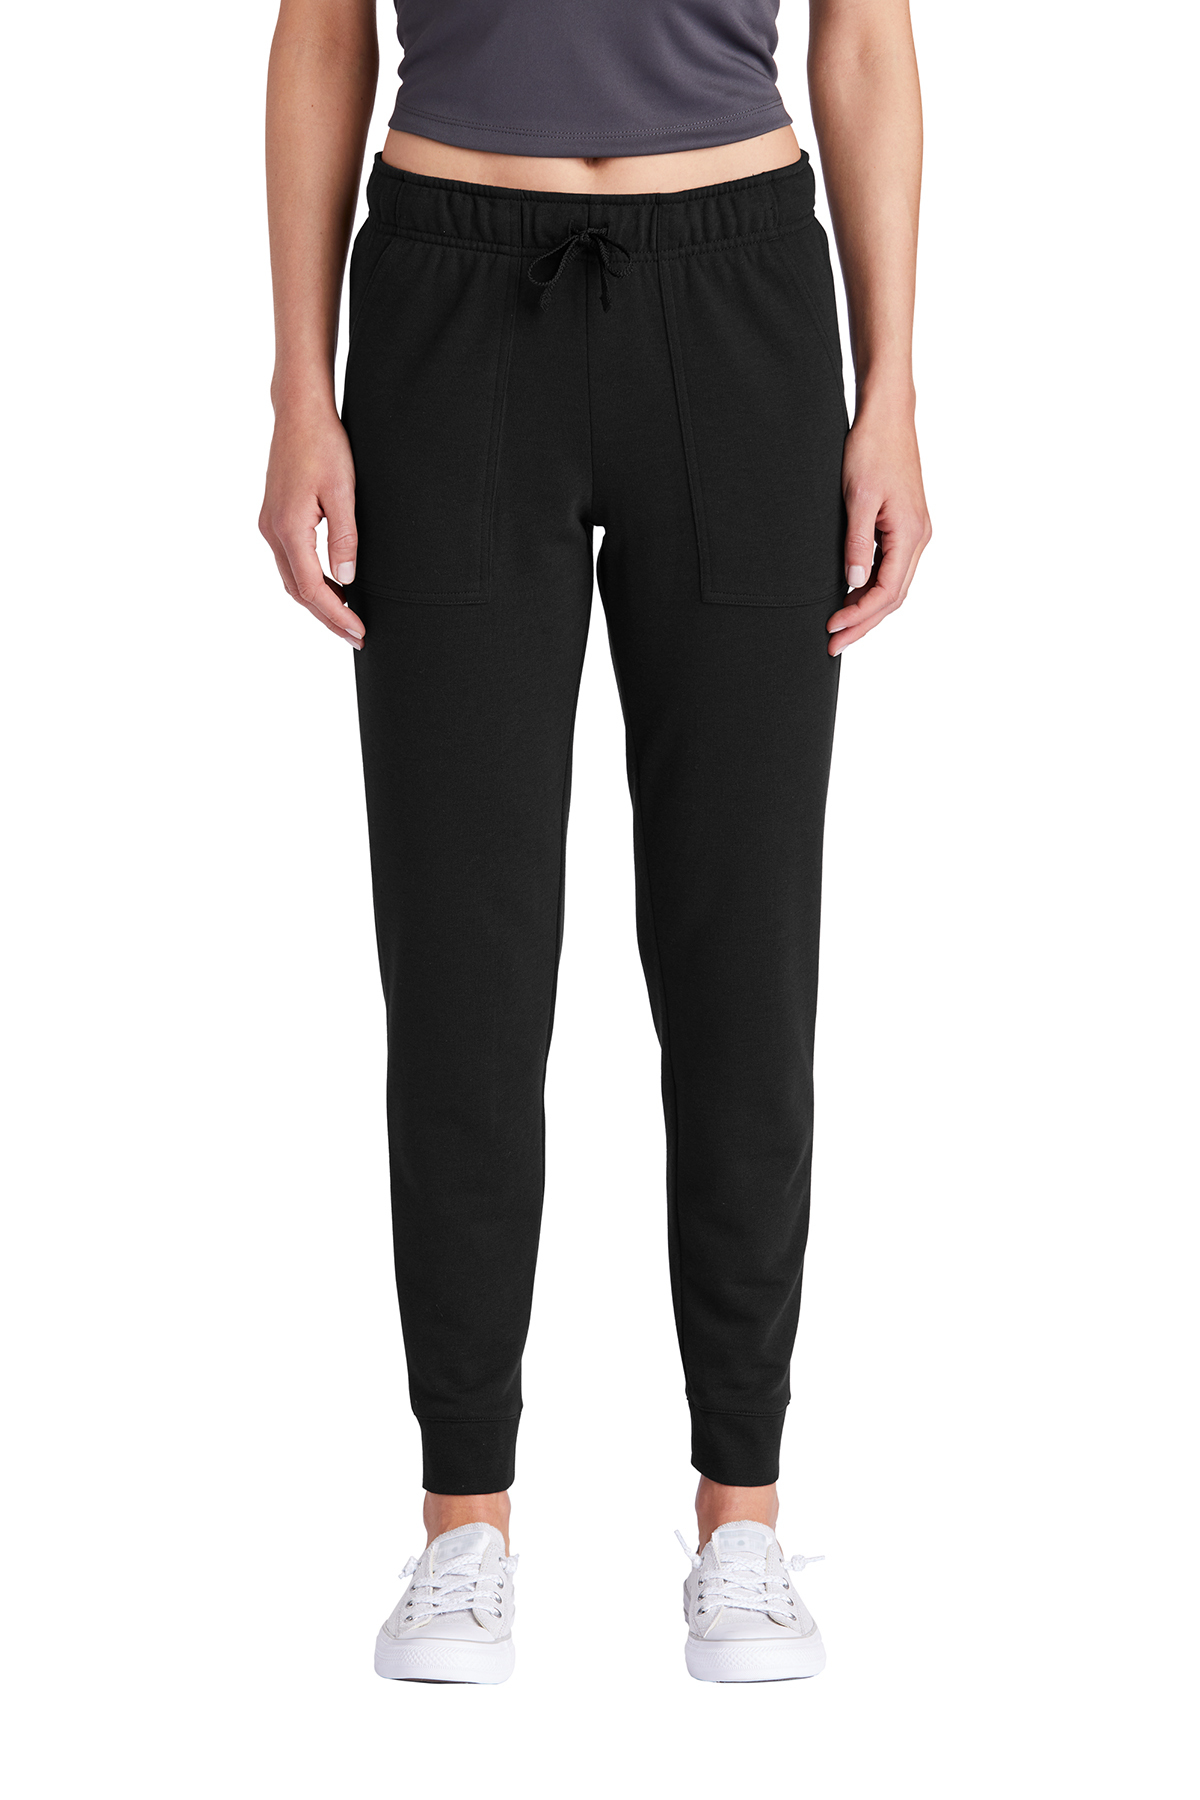 Sport Tek Ladies Posicharge Tri Blend Wicking Fleece Jogger Sweatpants Sweatshirts Fleece Sport Tek Unfollow sportek yoga pants to stop getting updates on your ebay feed. sport tek ladies posicharge tri blend wicking fleece jogger sweatpants sweatshirts fleece sport tek